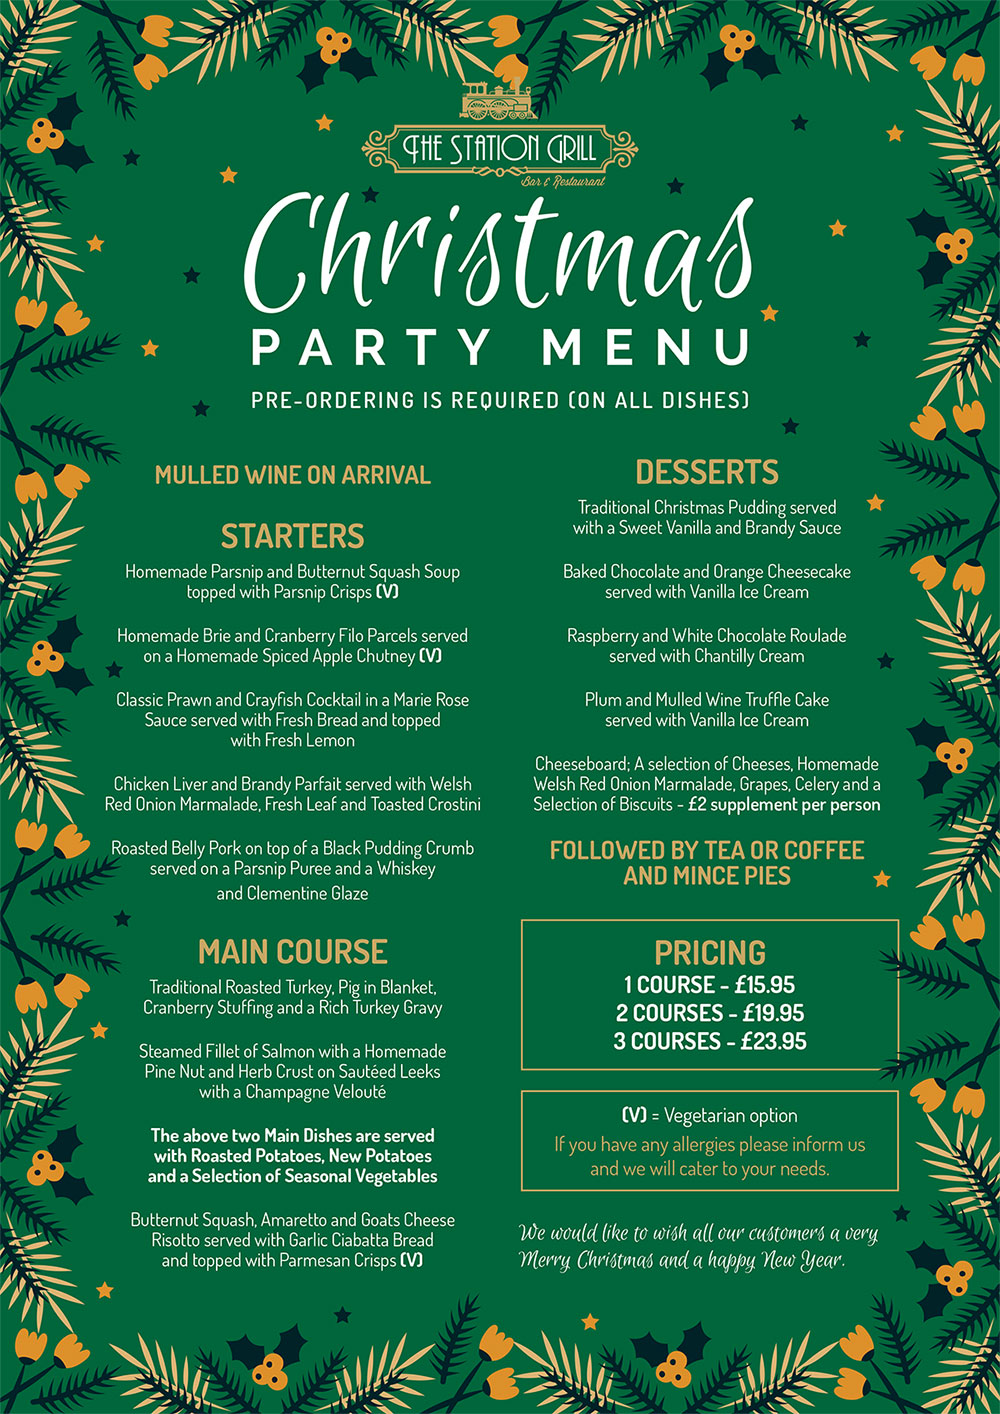 The Station Grill Christmas Party Menu